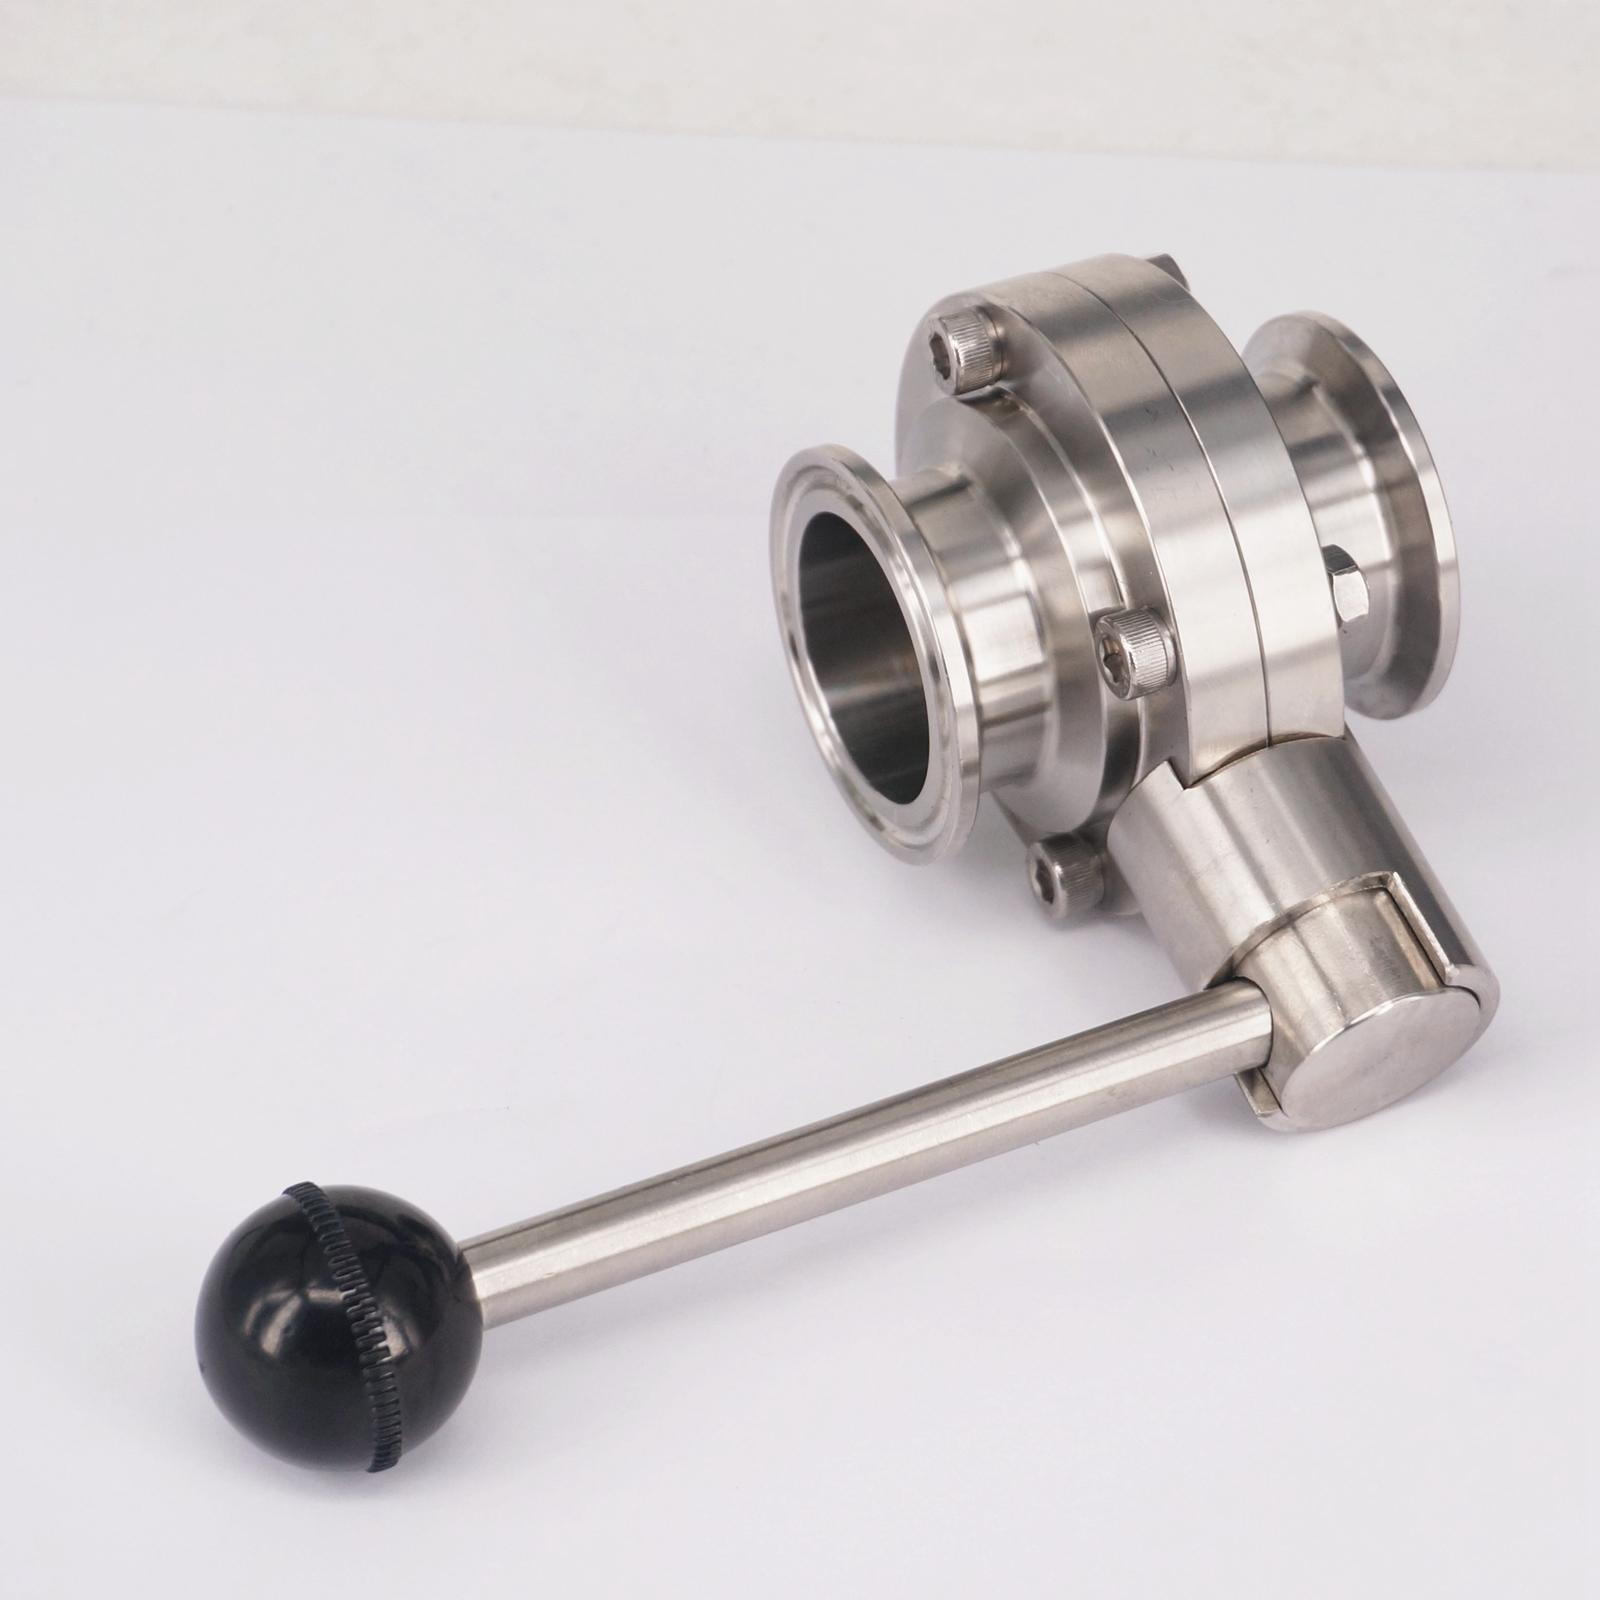 1-1/2 38mm SS304 Stainless Steel Sanitary 1.5 Tri Clamp Butterfly Valve Homebrew Beer Dairy Product sanitary adjustable 11 2 tri clamp beer fermenter pressure vacuum relief valve ss304 stainless steel 15psi